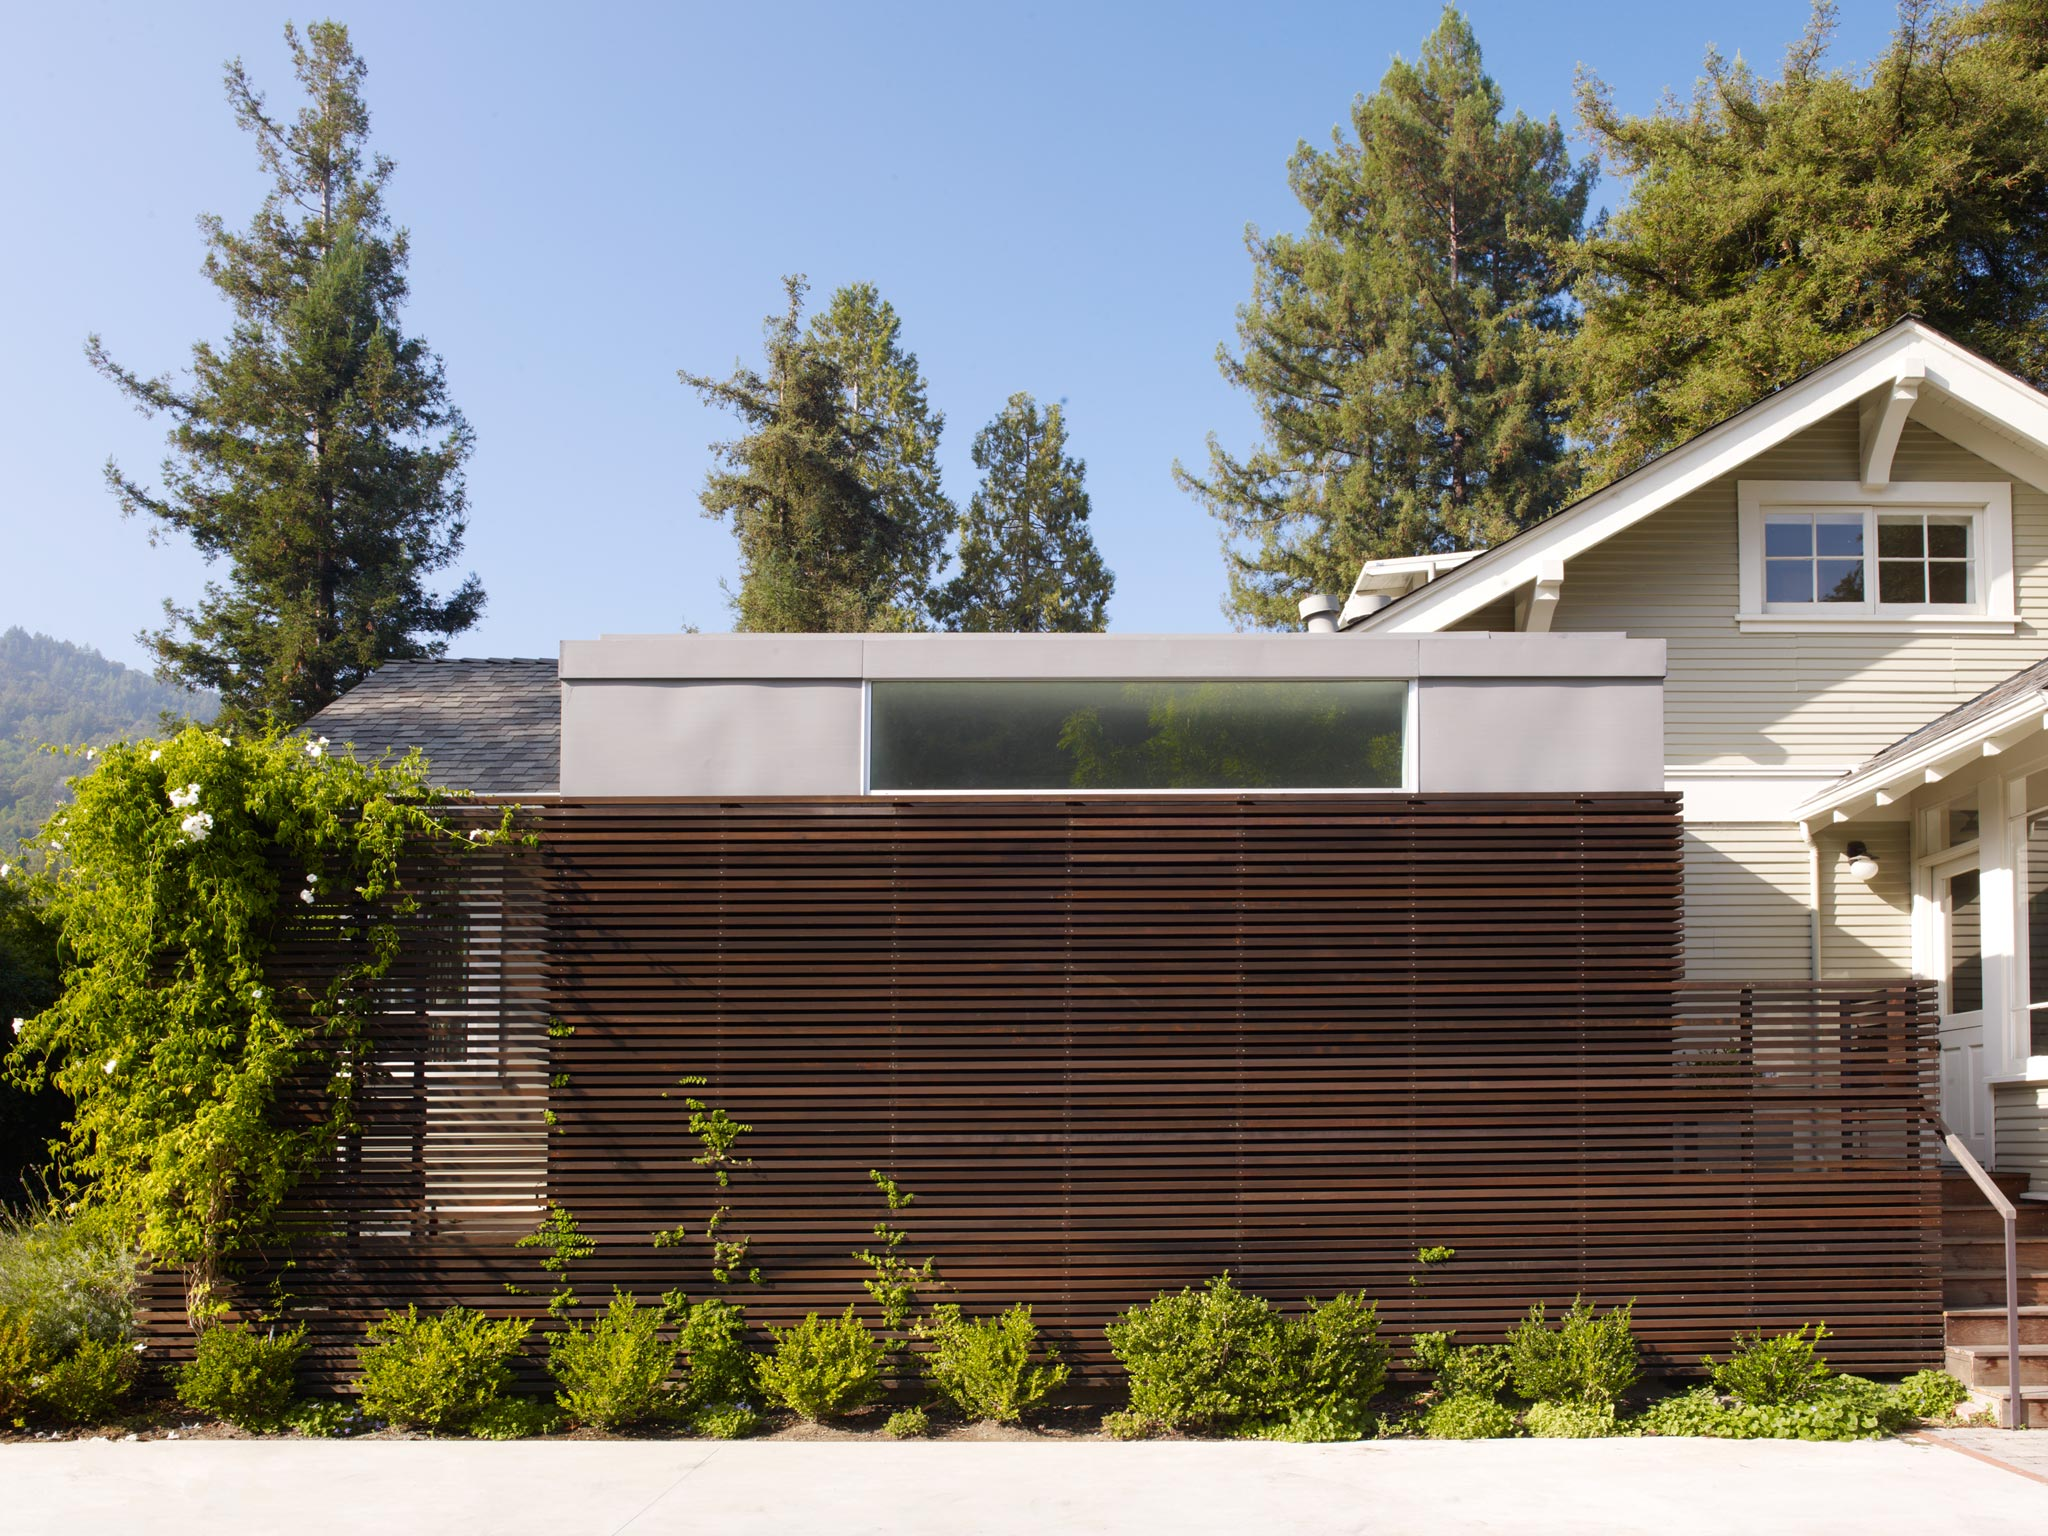 Larkspur modern design minimalist addition street view of building front